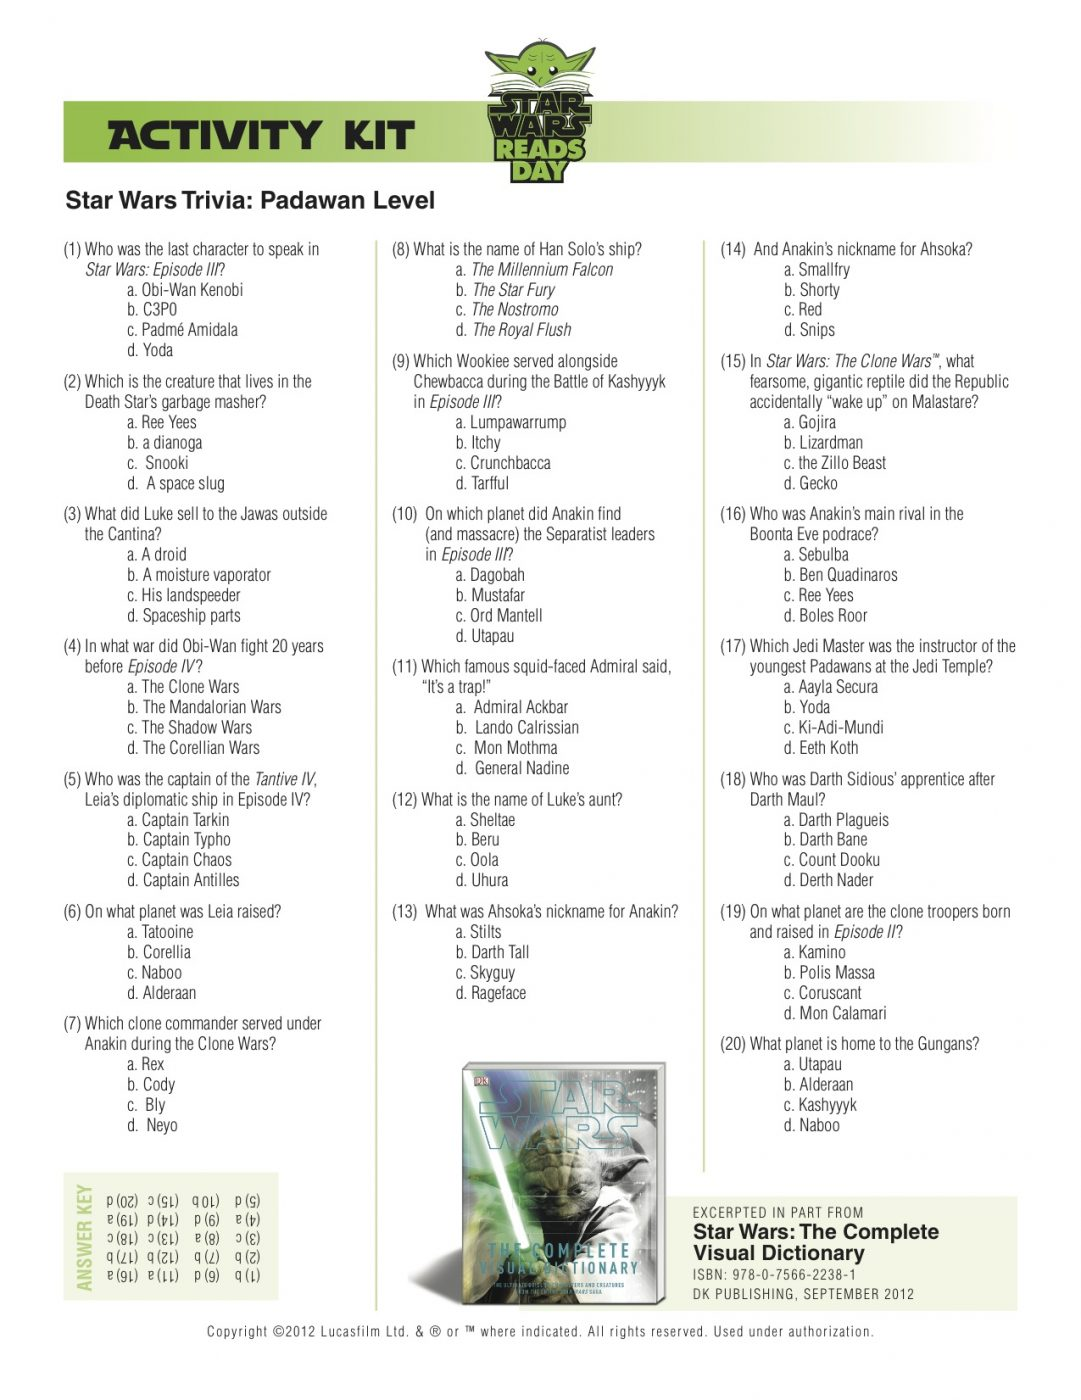 Star Wars Reads Day Activity Pages